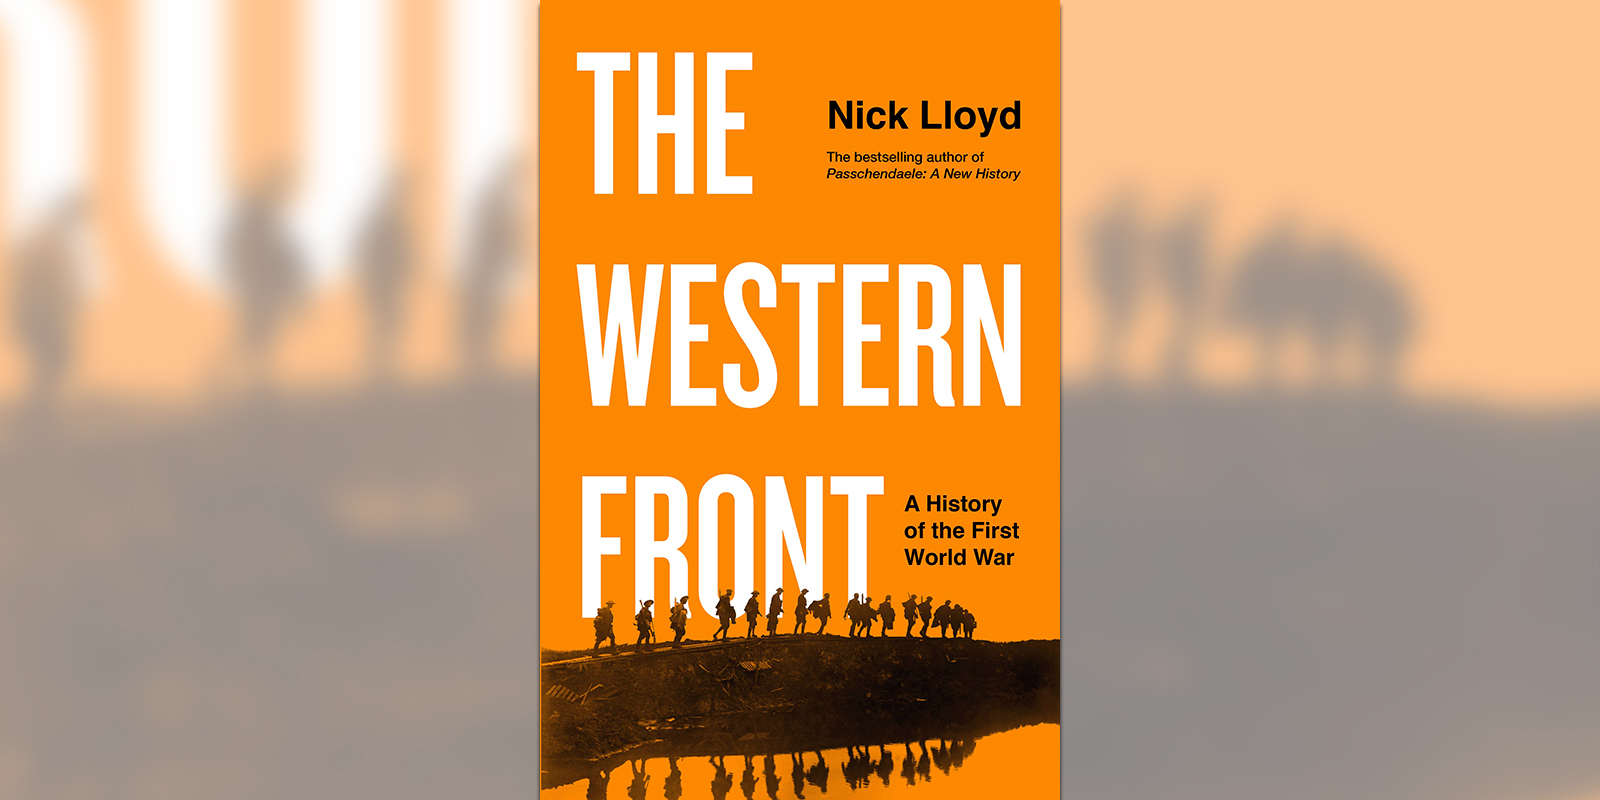 'The Western Front' book cover